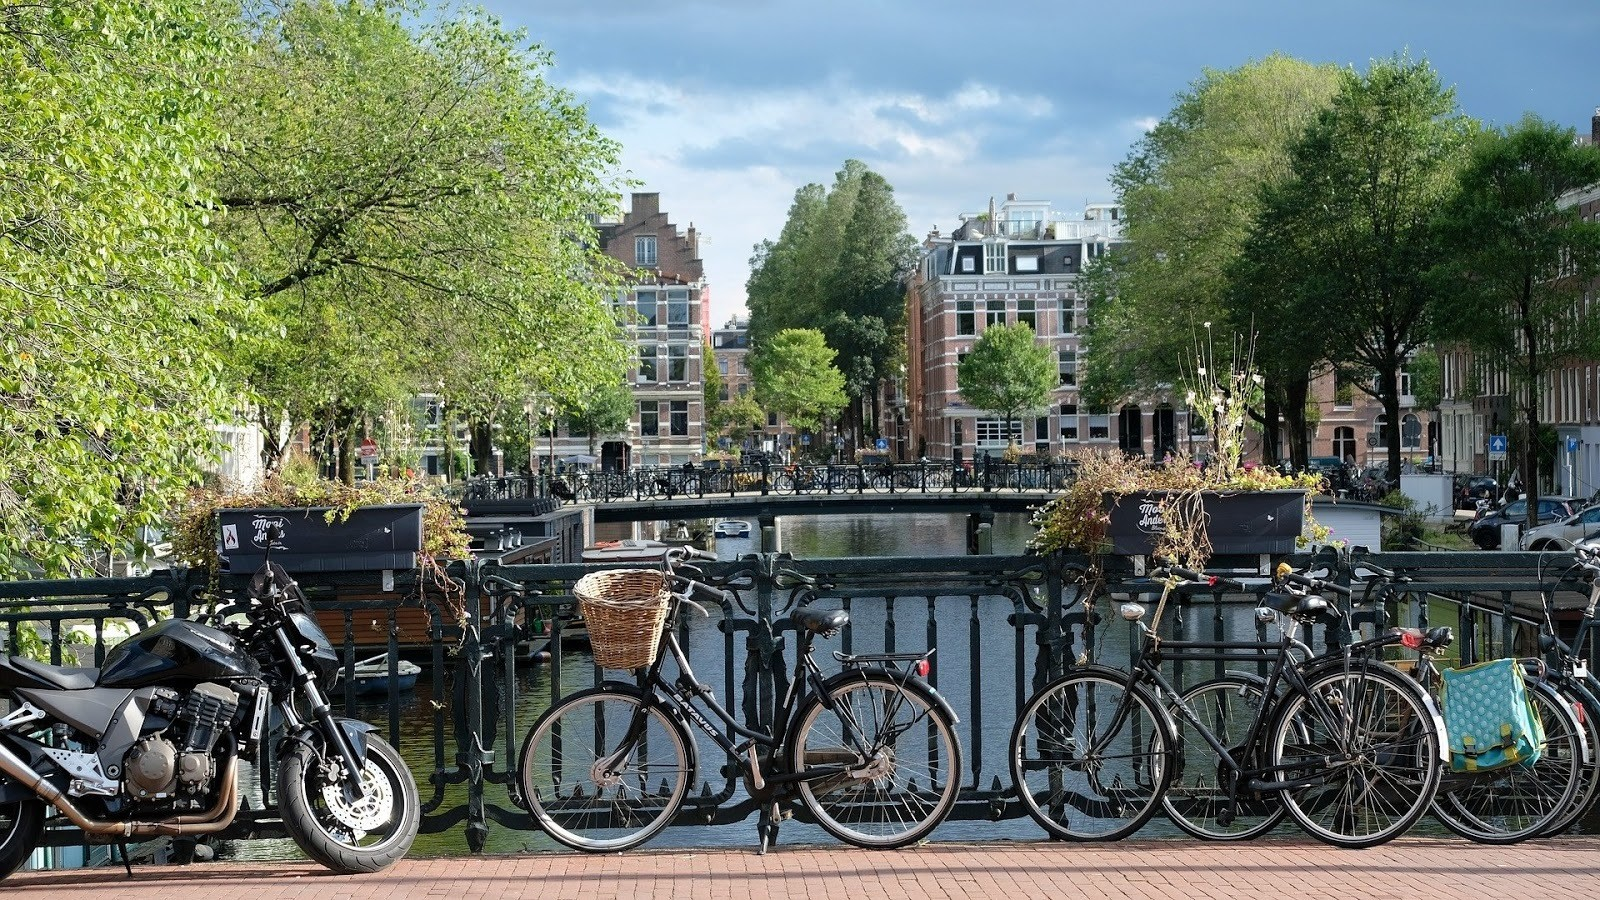 image of bikes in Amsterdam